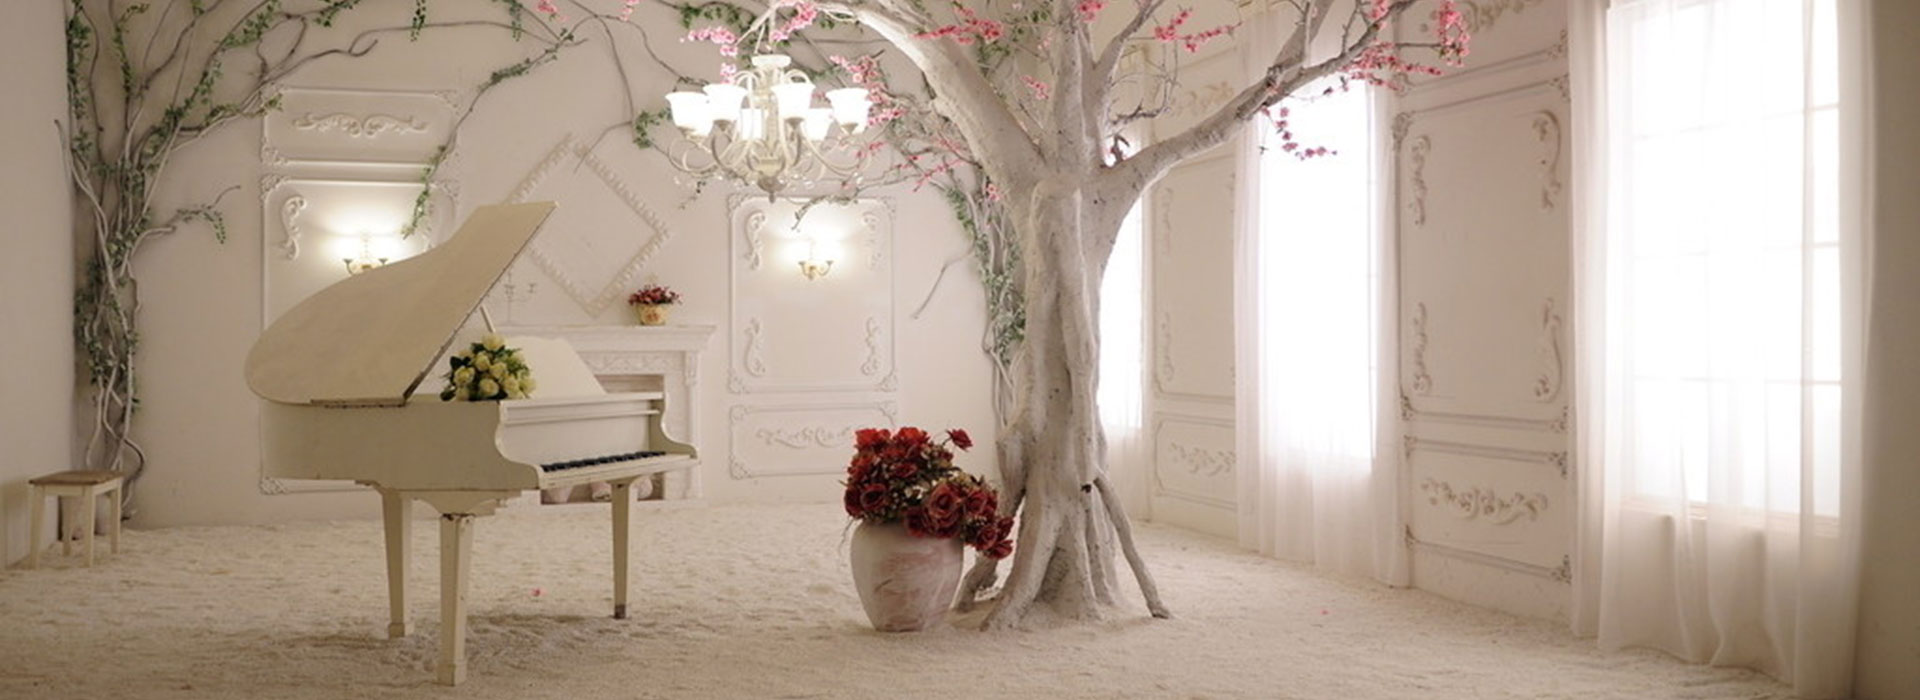 continental romantic aesthetic background  piano  window  indoor background image for free download